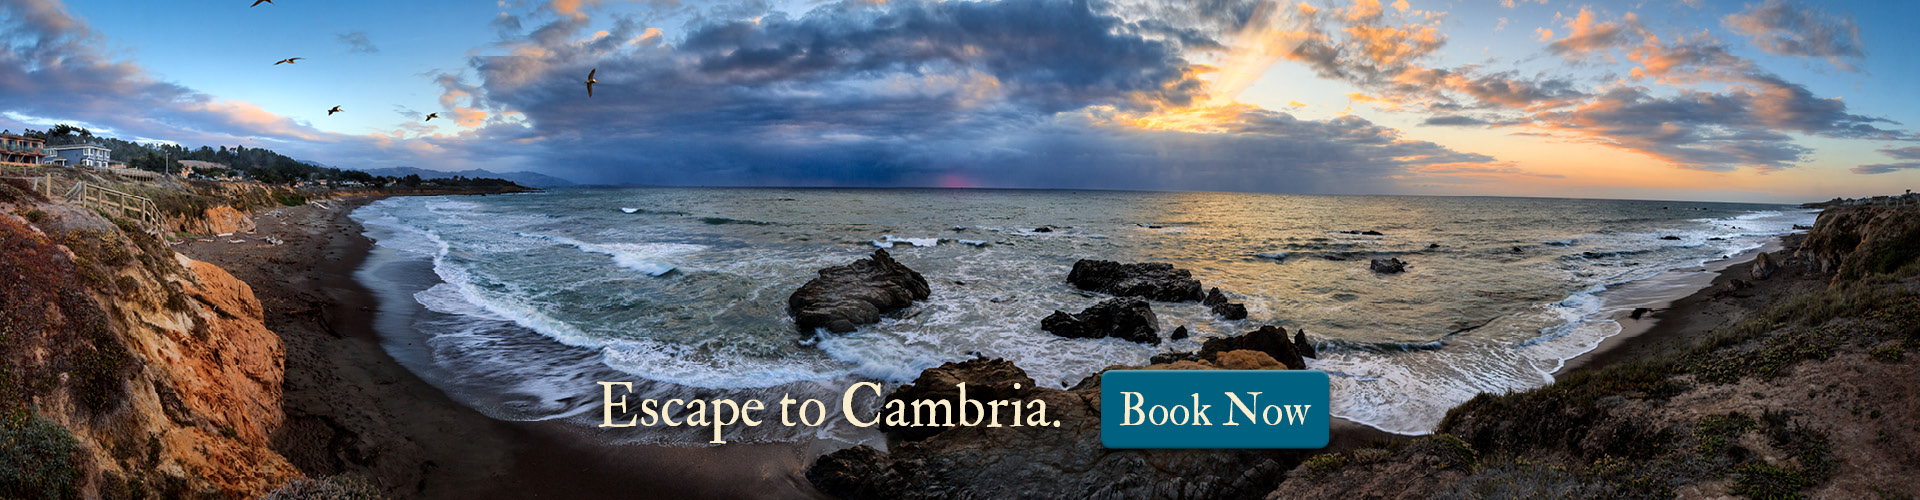 Cambria Book Now